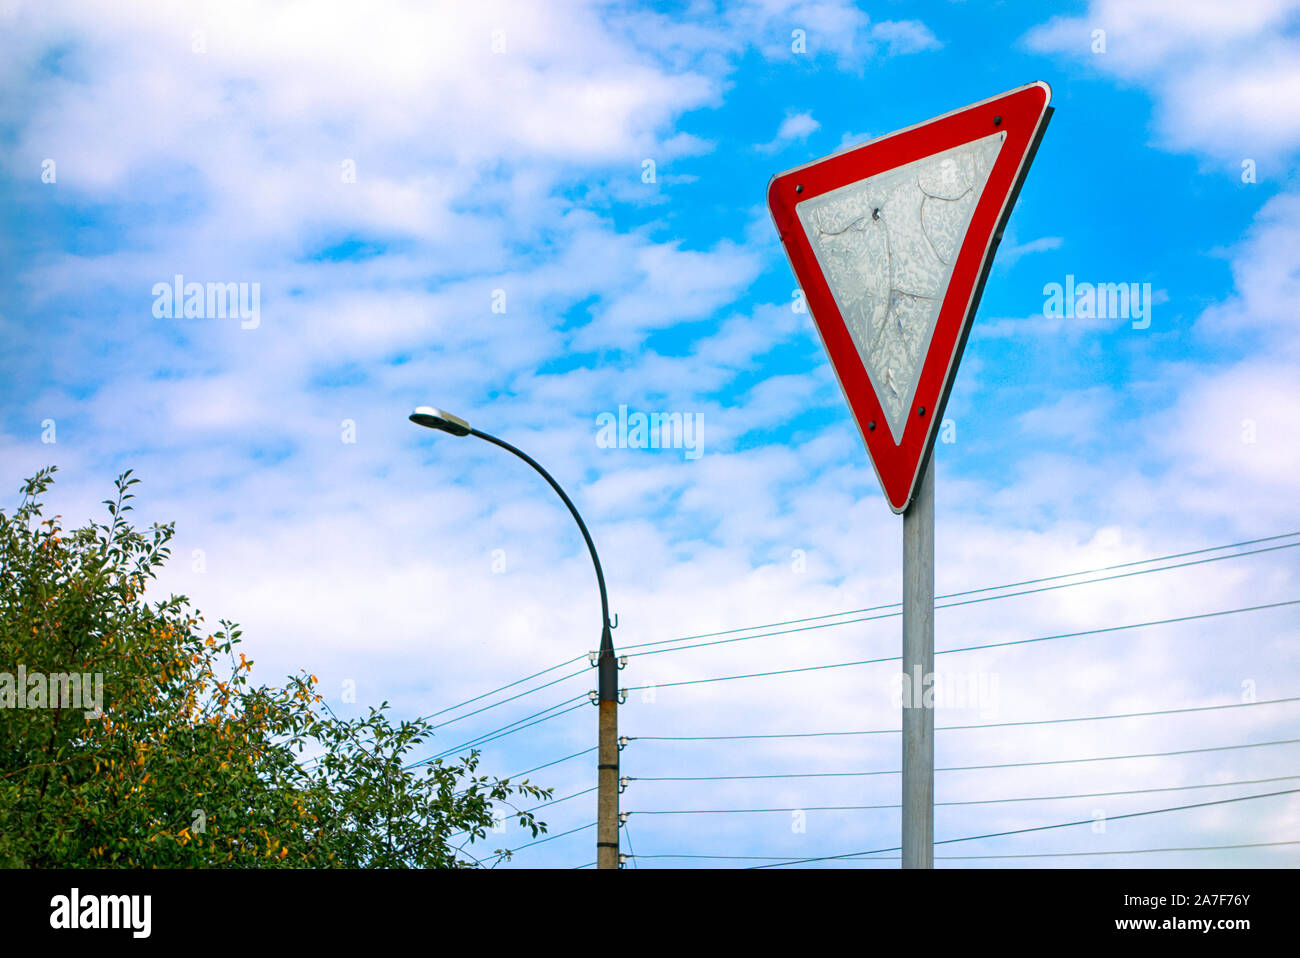 Give way road sign against cloudy sky. Stock Photo